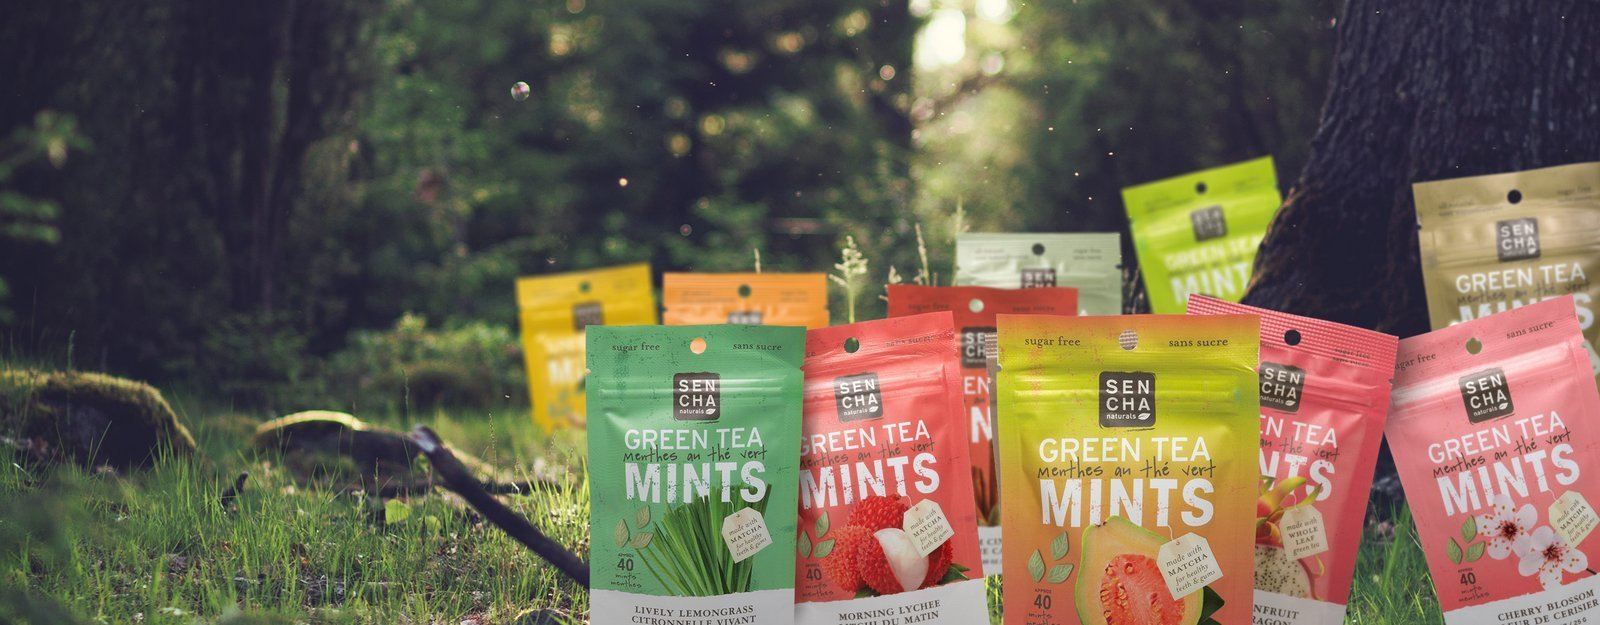 Green Tea Mints Pocket Packs